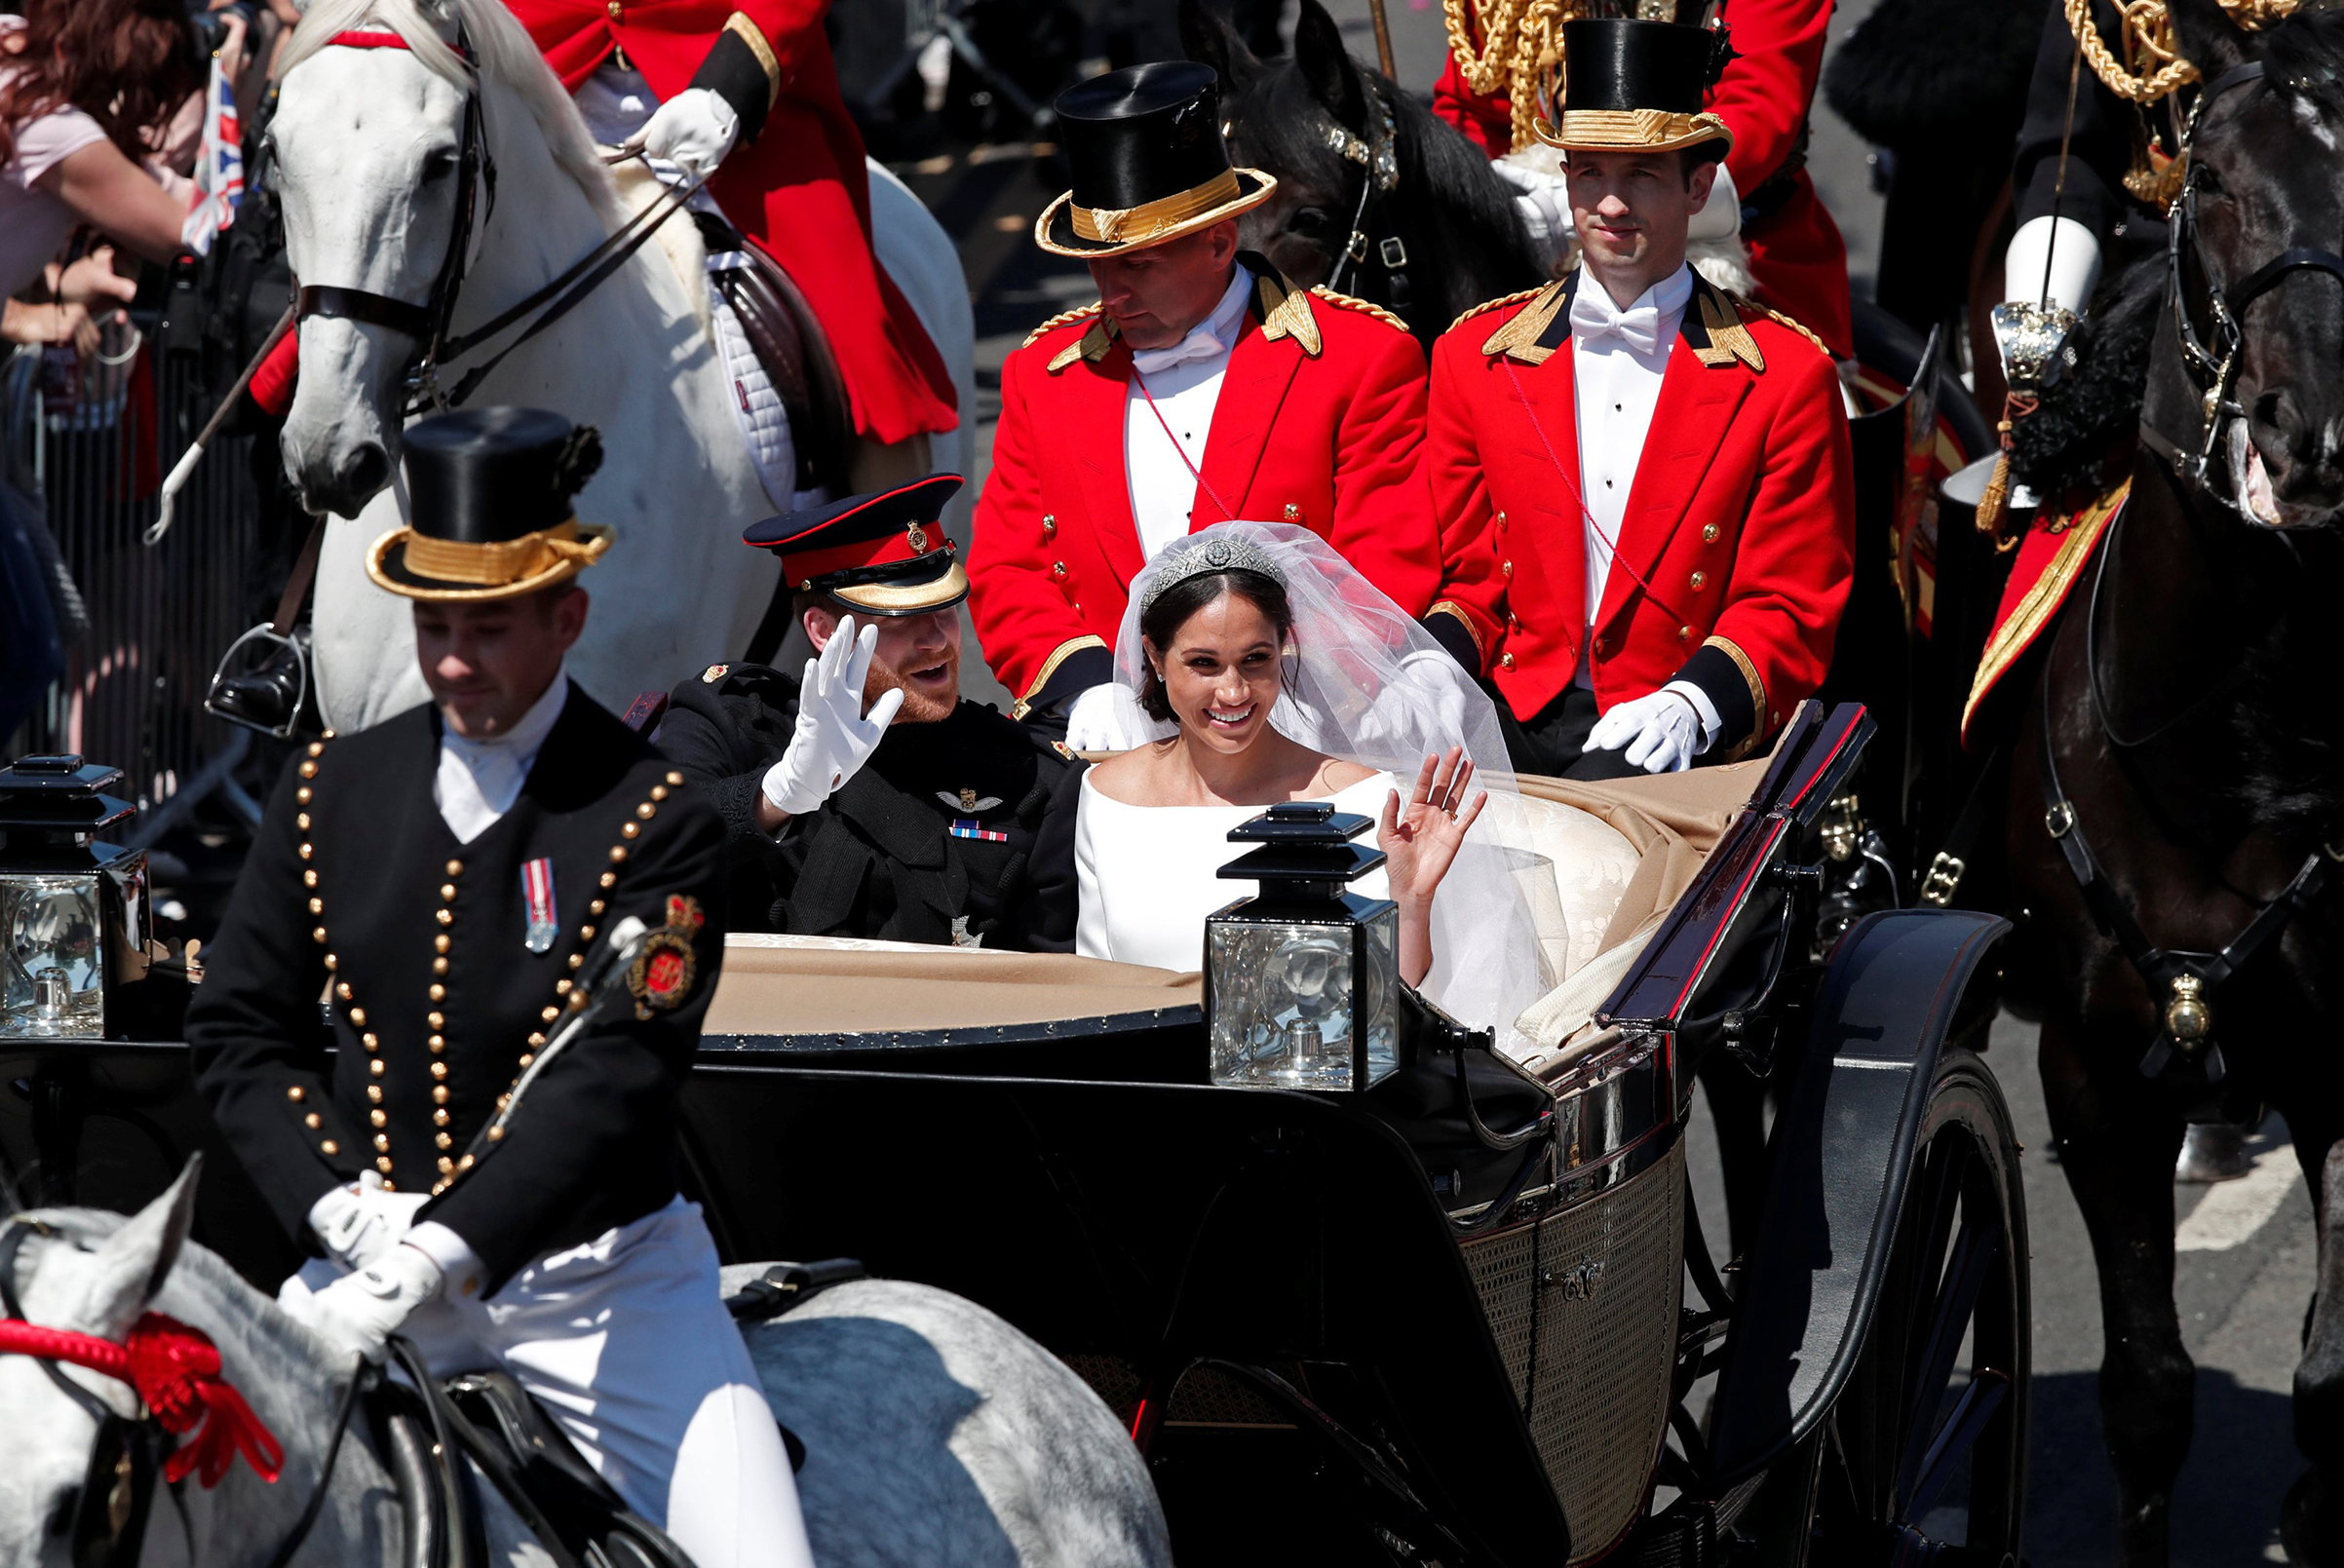 Prince Harry and Meghan Markle in a horse-drawn carriage after their wedding ceremony at St George's Chapel in Windsor Castle, May 19, 2018.